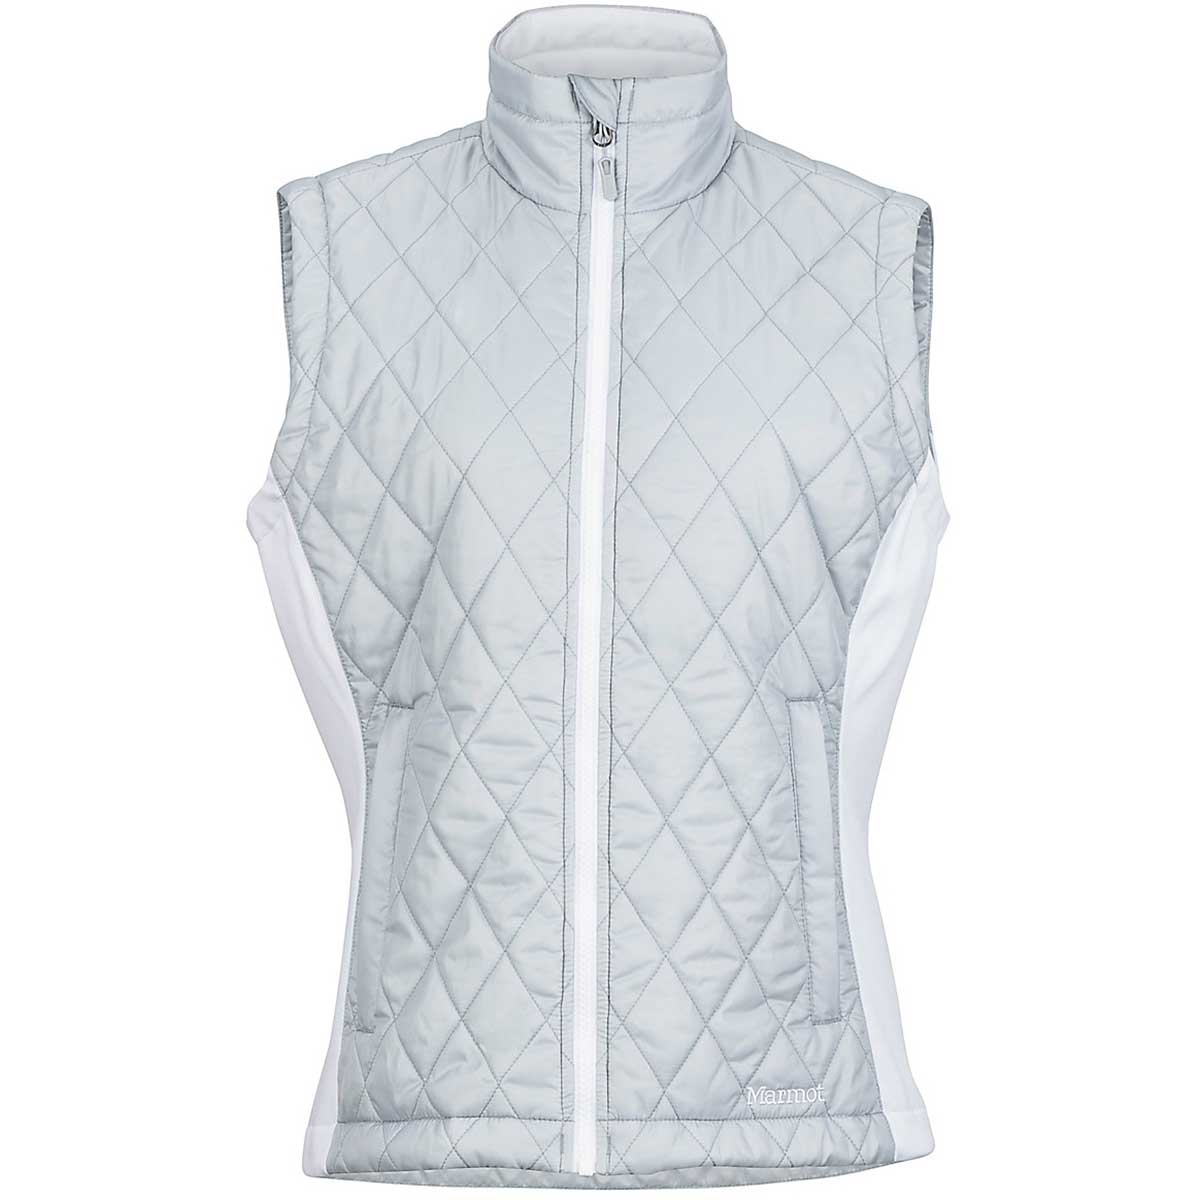 Marmot women's Kitzbuhel Vest in Brite Steel and White main view